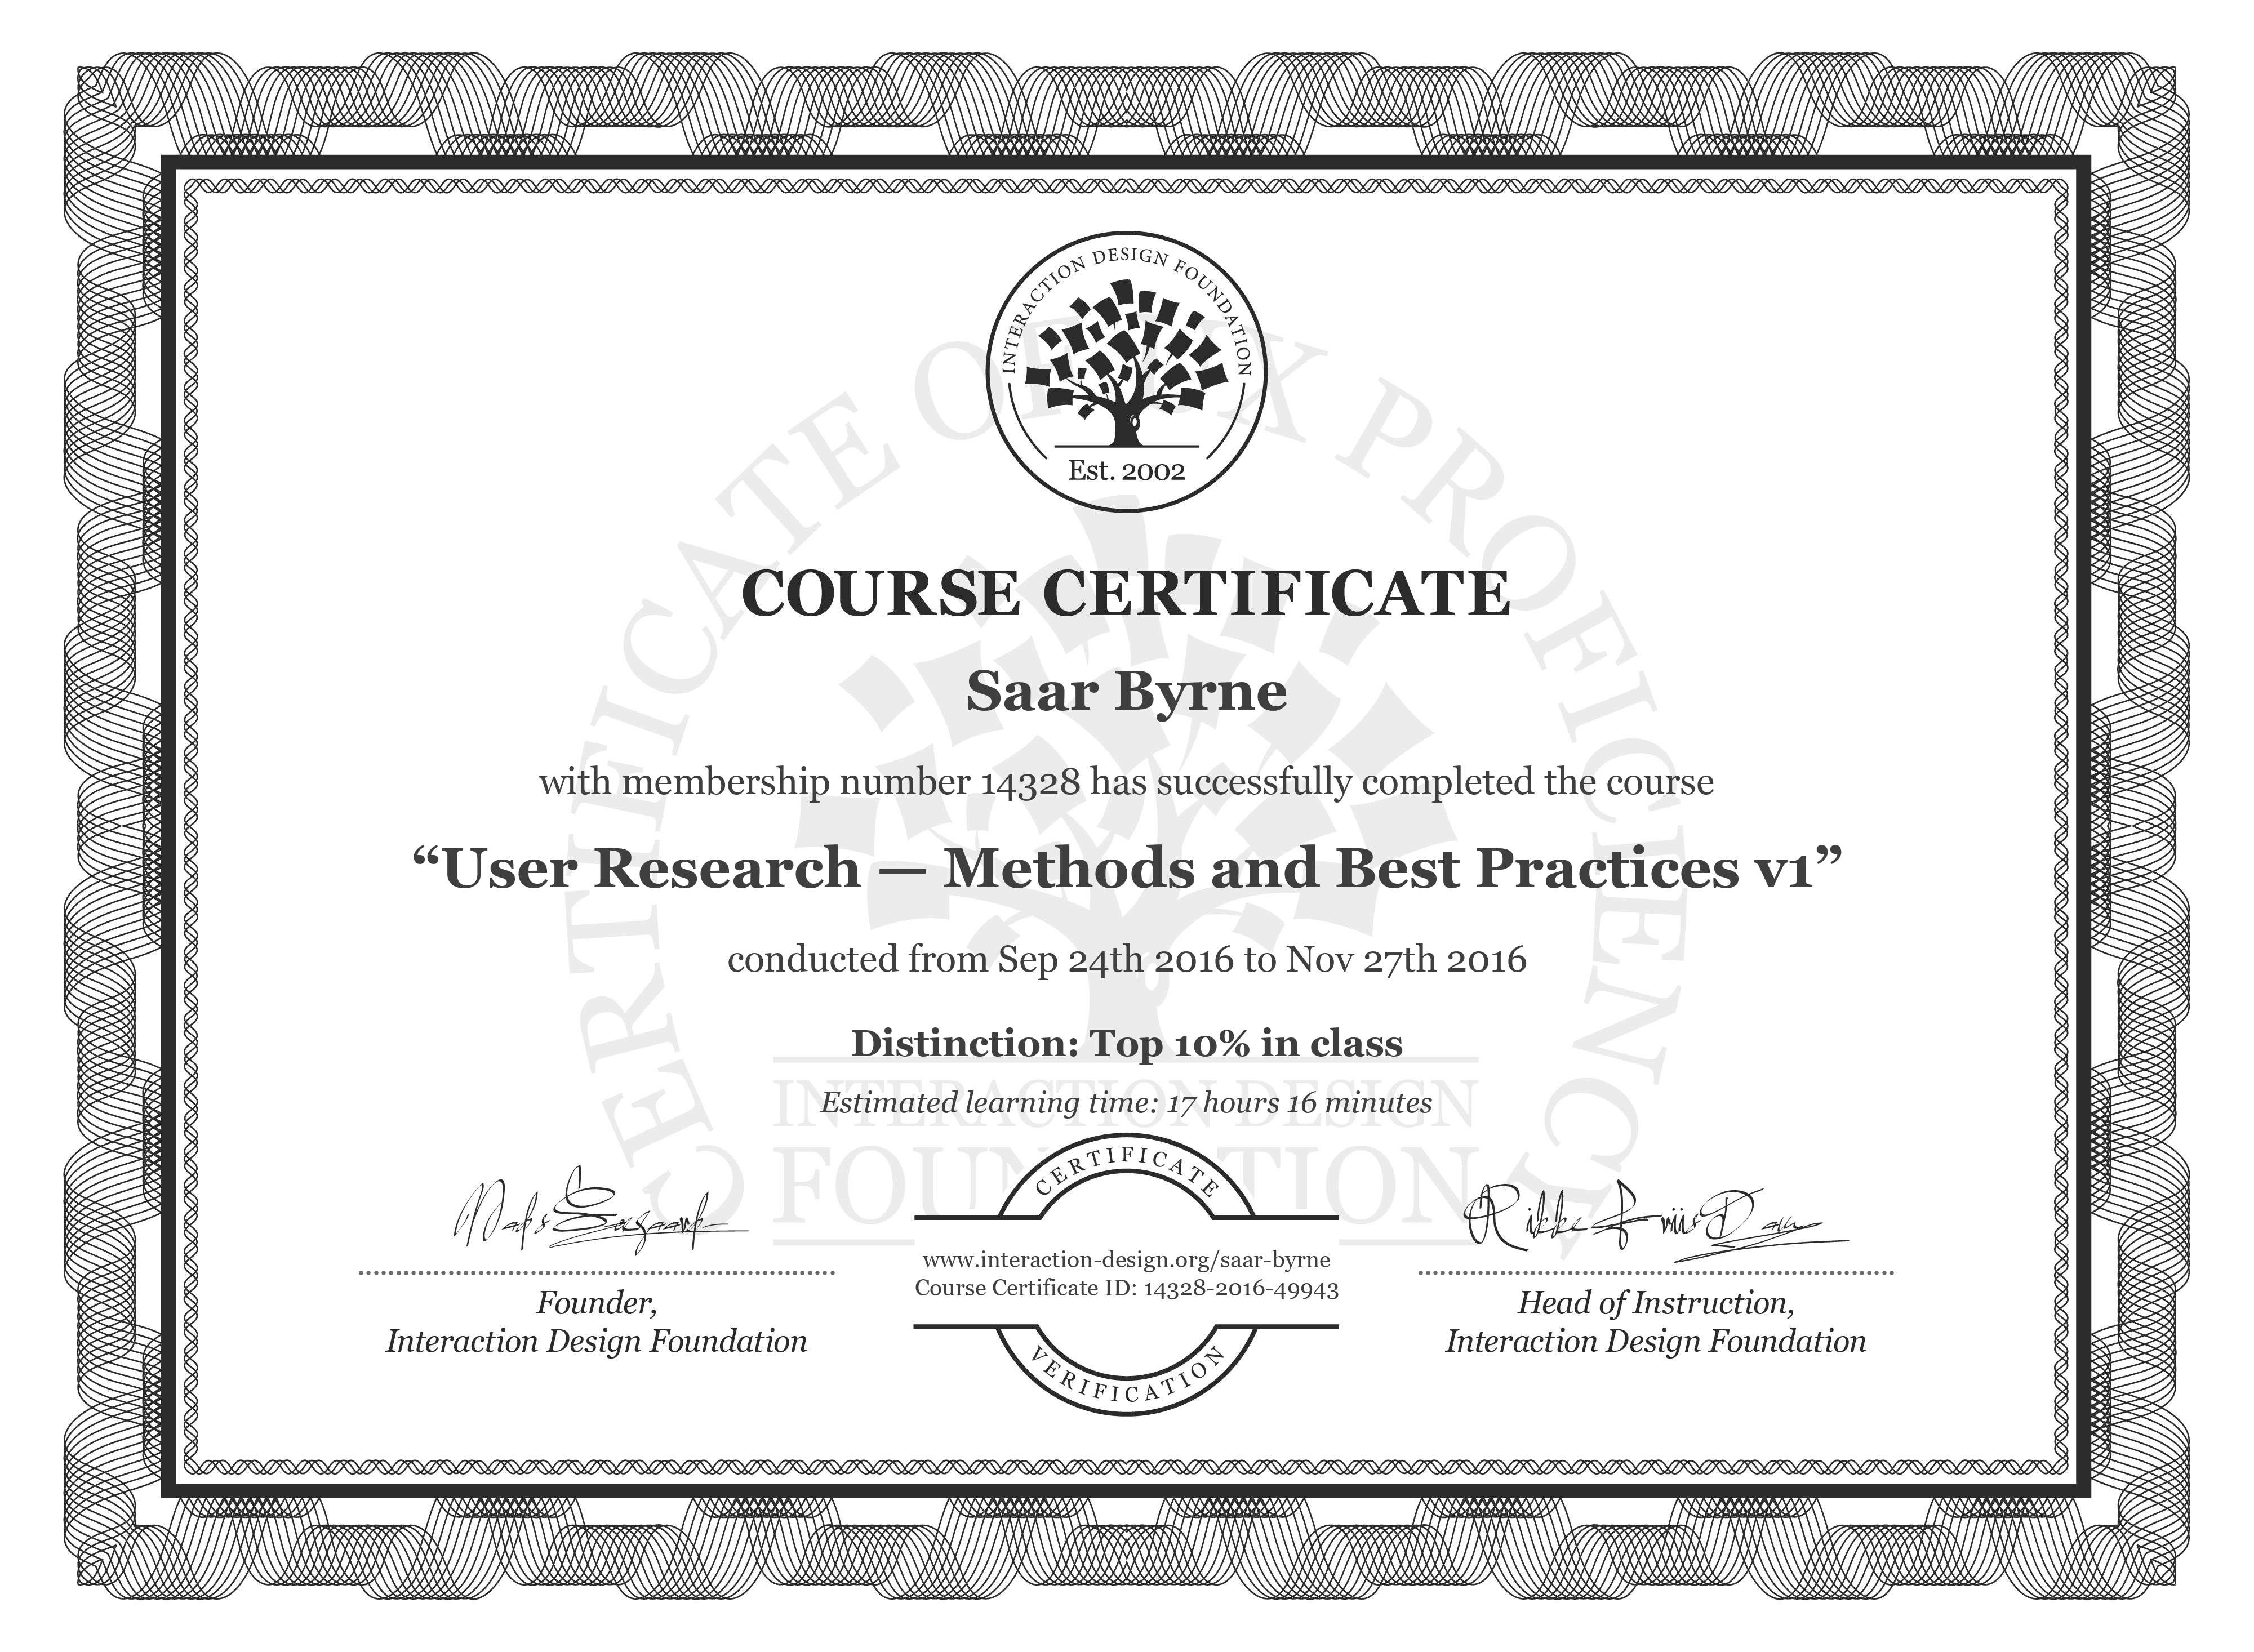 Saar Byrne's Course Certificate: User Research — Methods and Best Practices